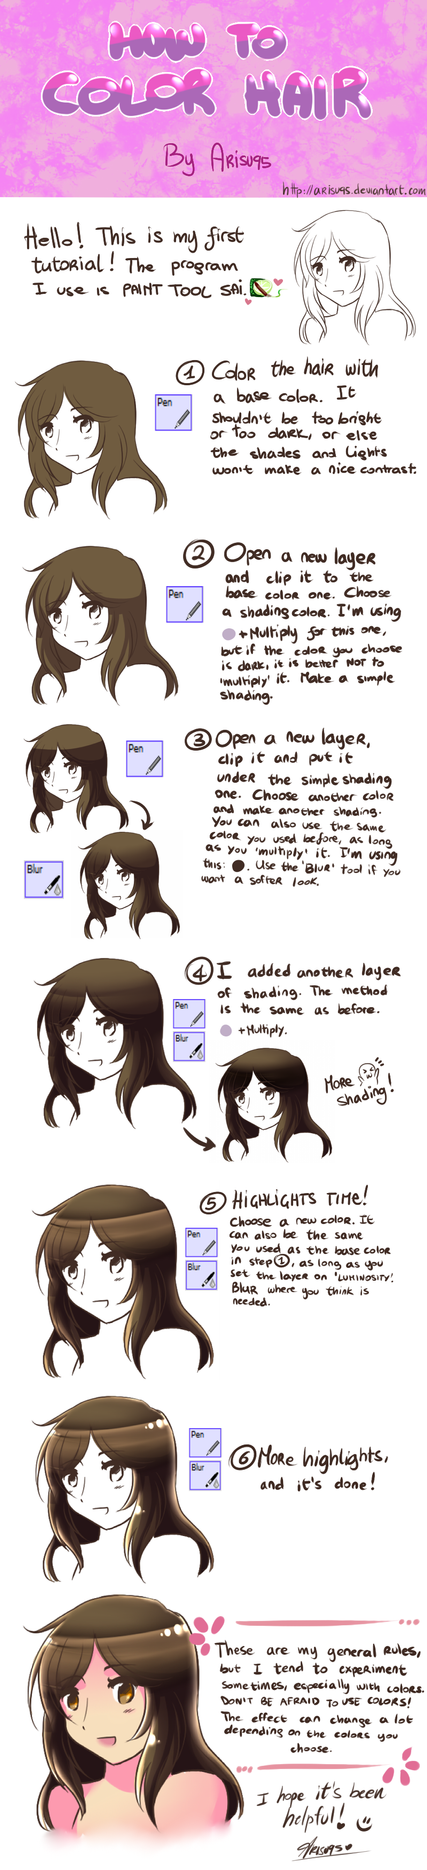 How to color hair - Tutorial by Arisu95